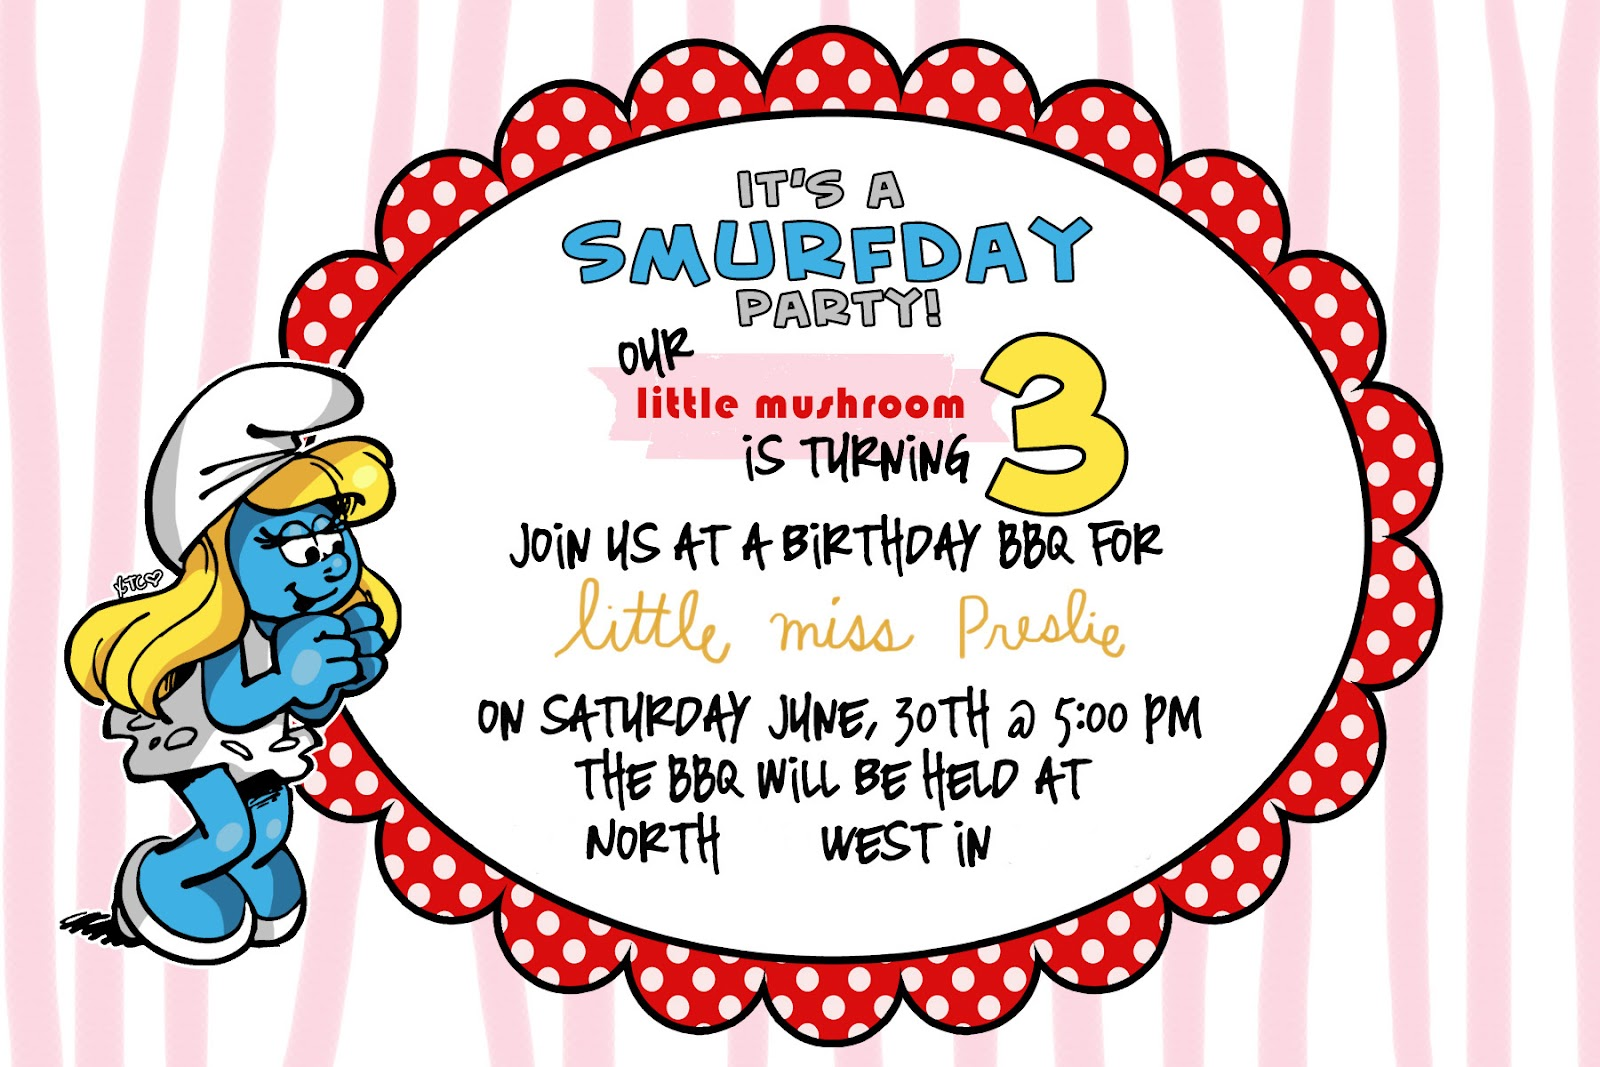 Love Notes by Lauryn: smurf party invites!